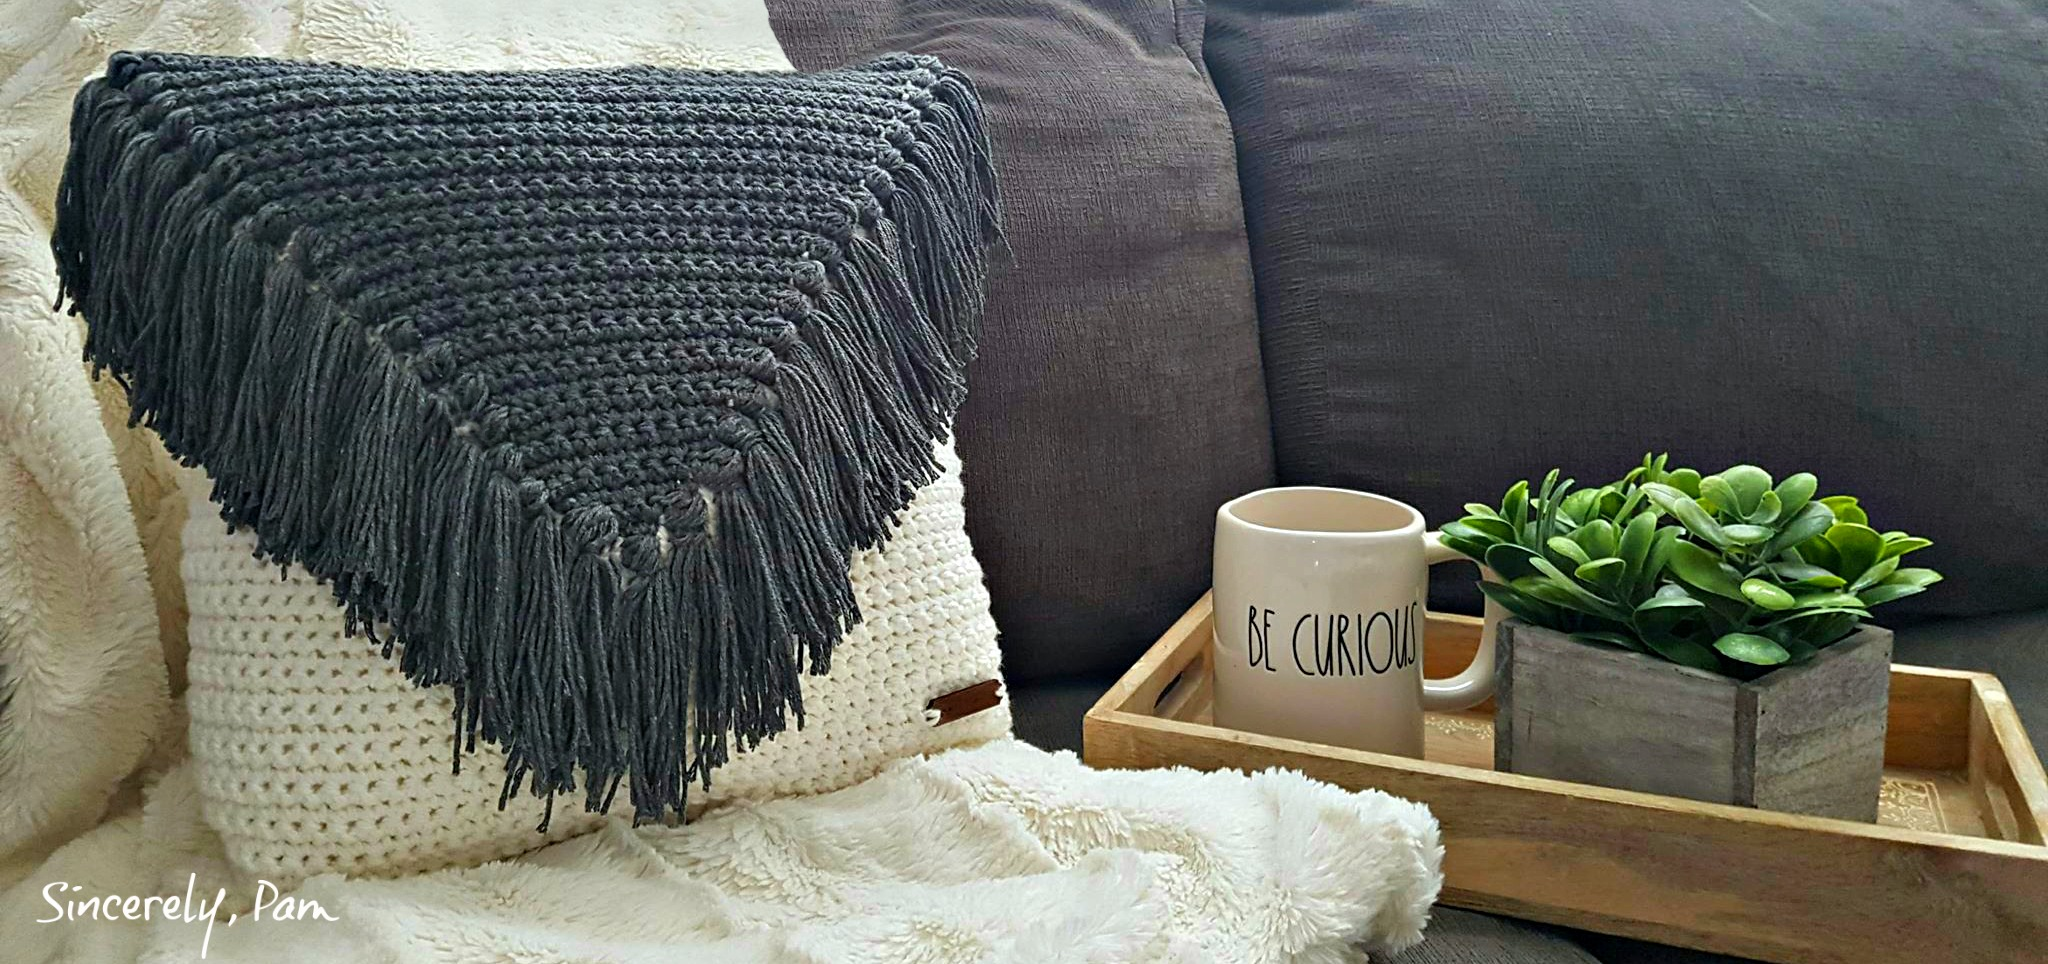 My Favorite Pillow crochet pattern by Sincerely, Pam